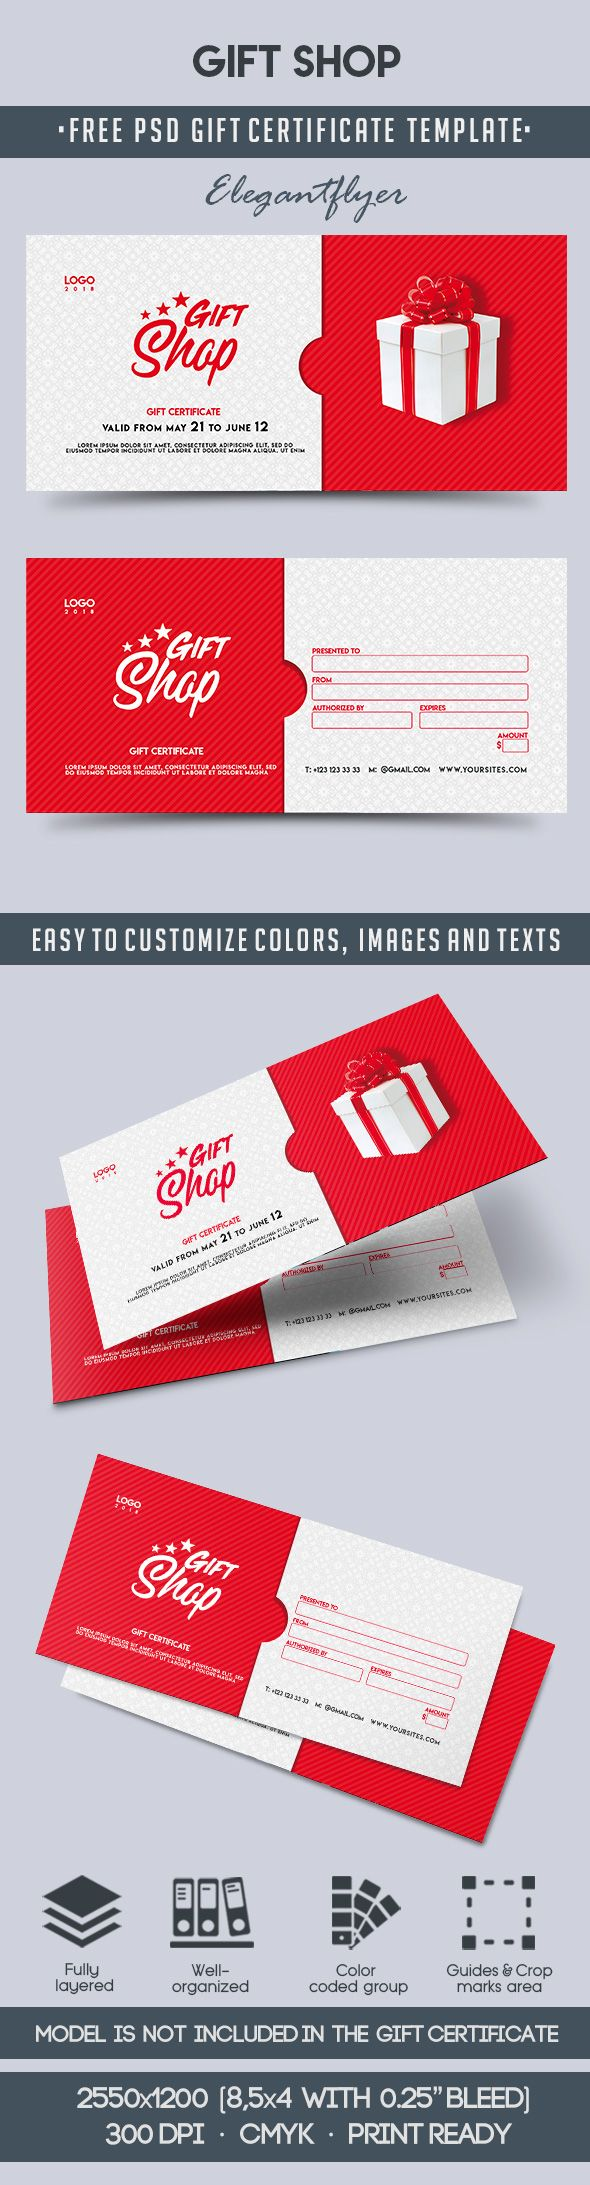 Gift Shop – Free Gift Certificate PSD Template